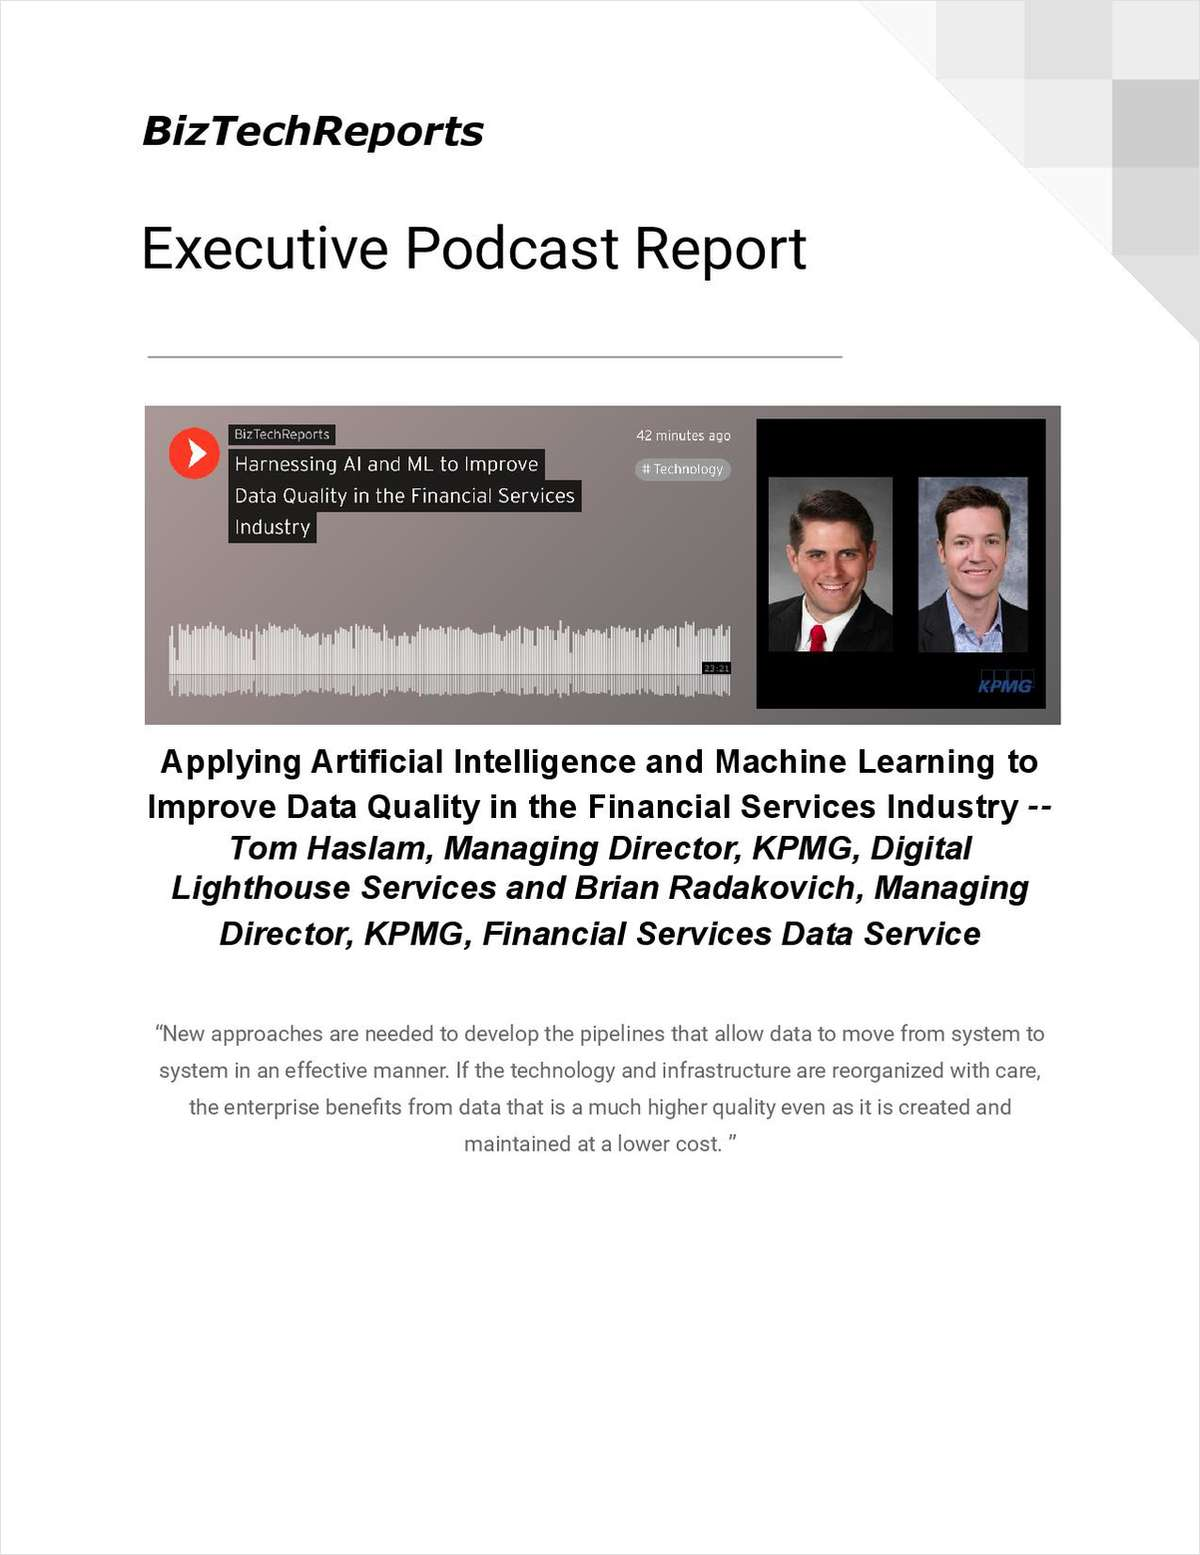 Applying Artificial Intelligence and Machine Learning to Improve Data Quality in the Financial Services Industry -- Tom Haslam, Managing Director, KPMG, Digital Lighthouse Services and Brian Radakovic